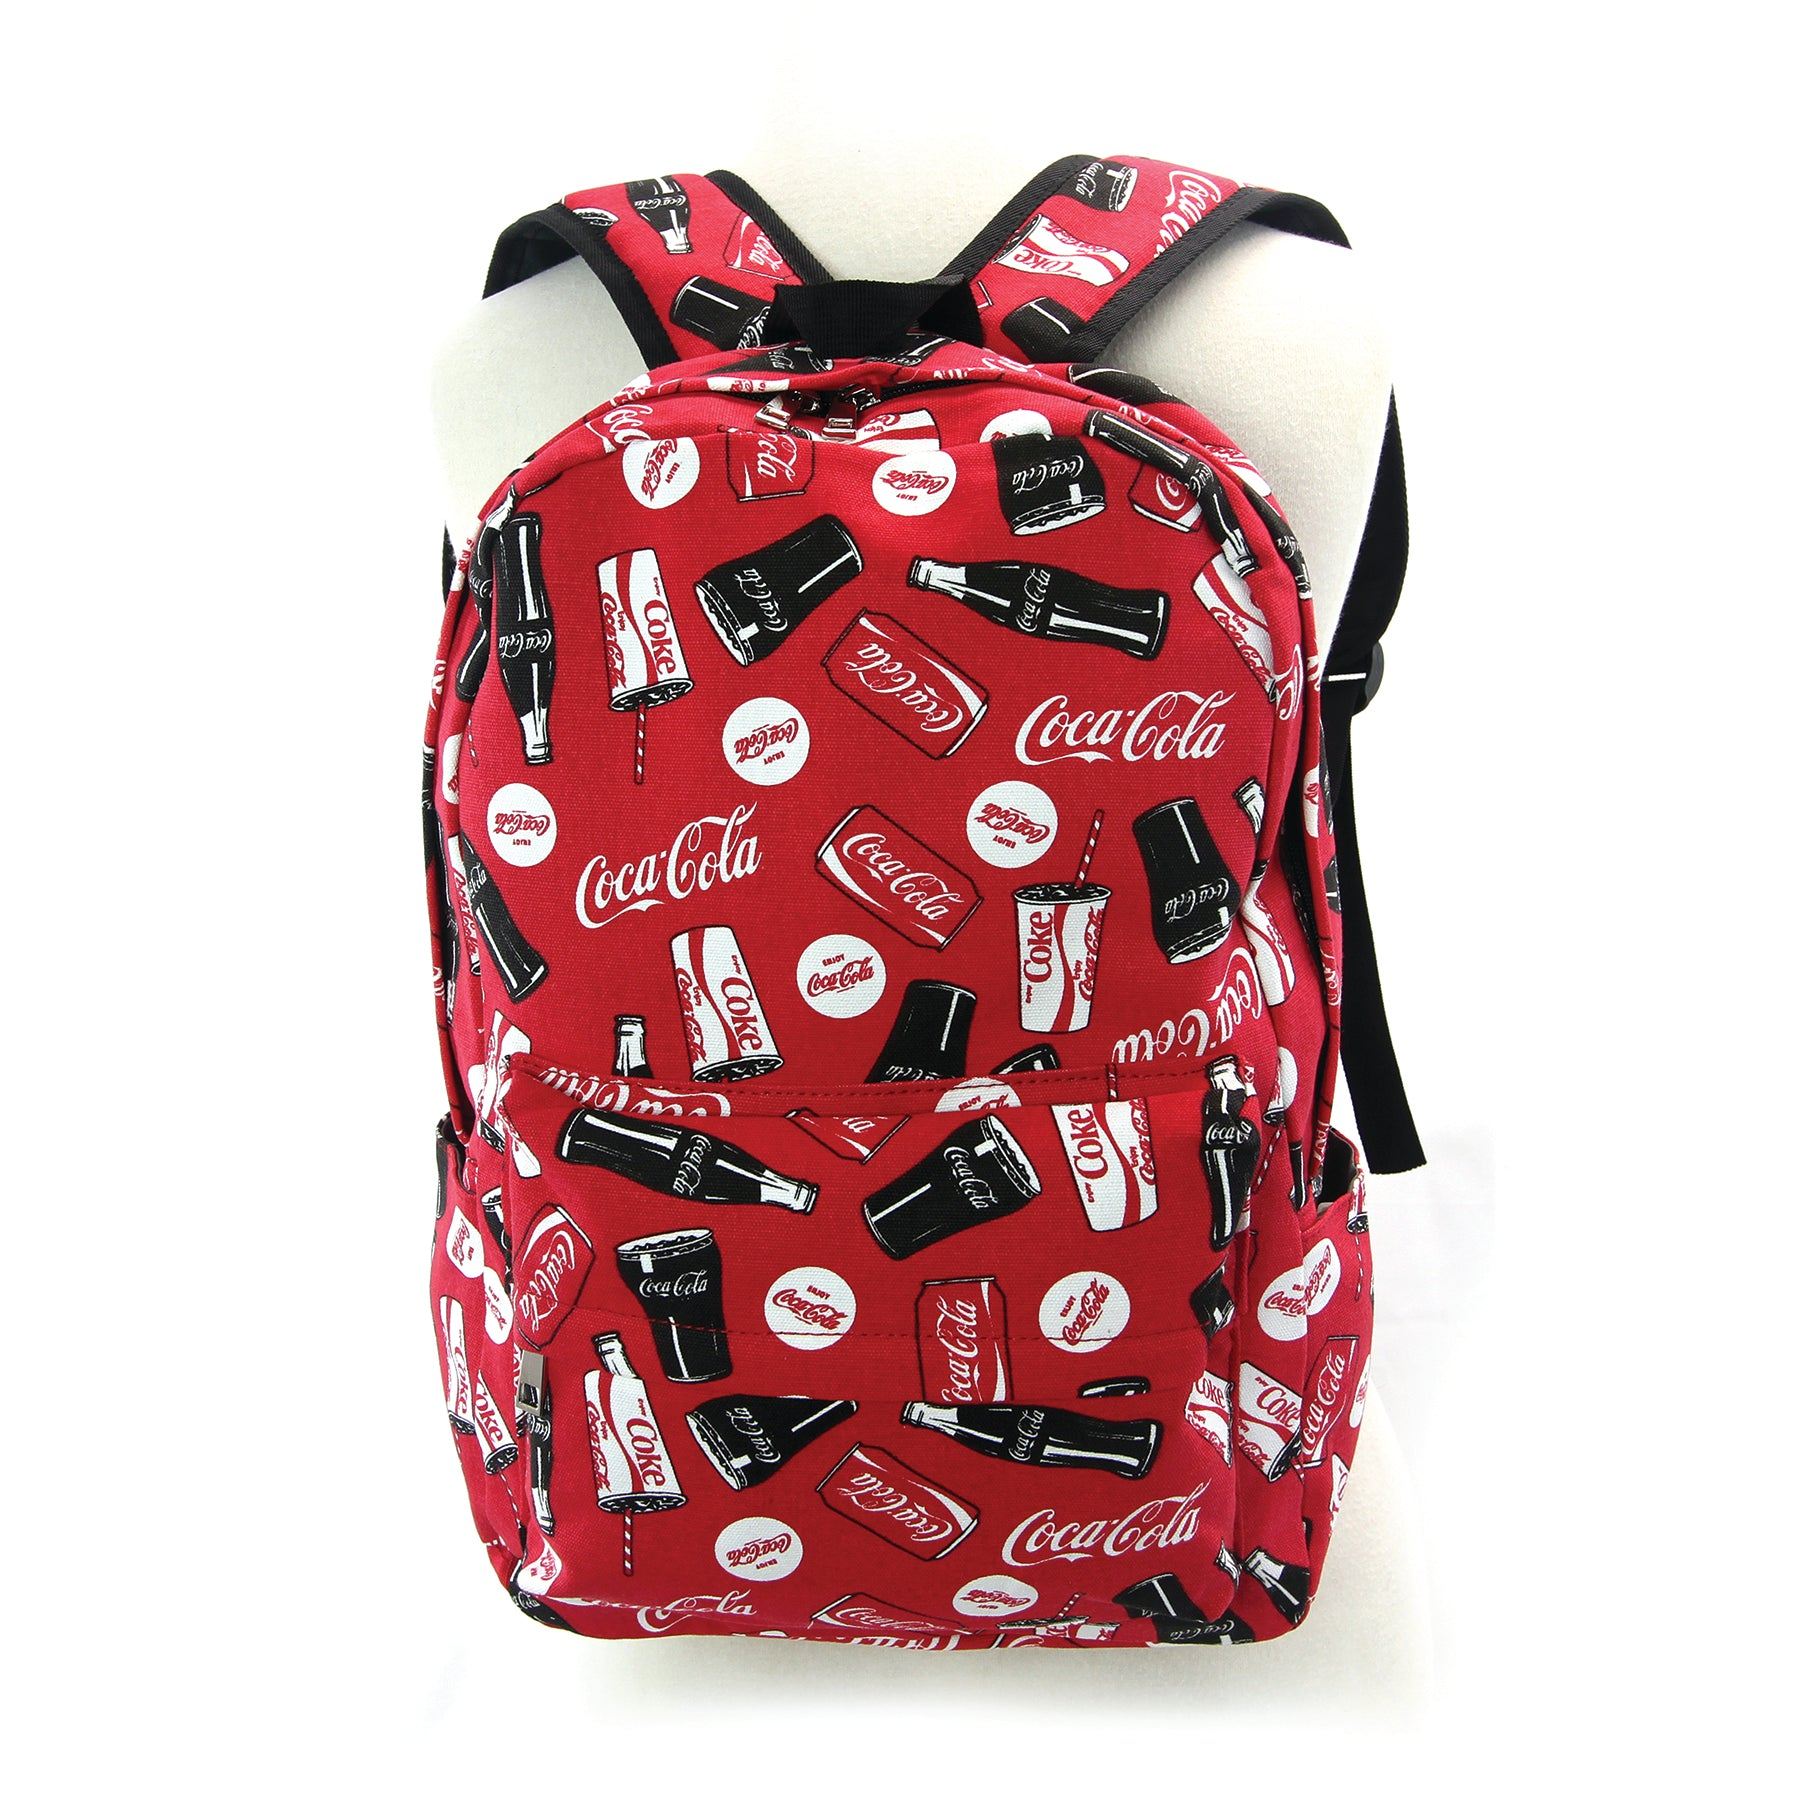 Coca-cola backpack frontal view